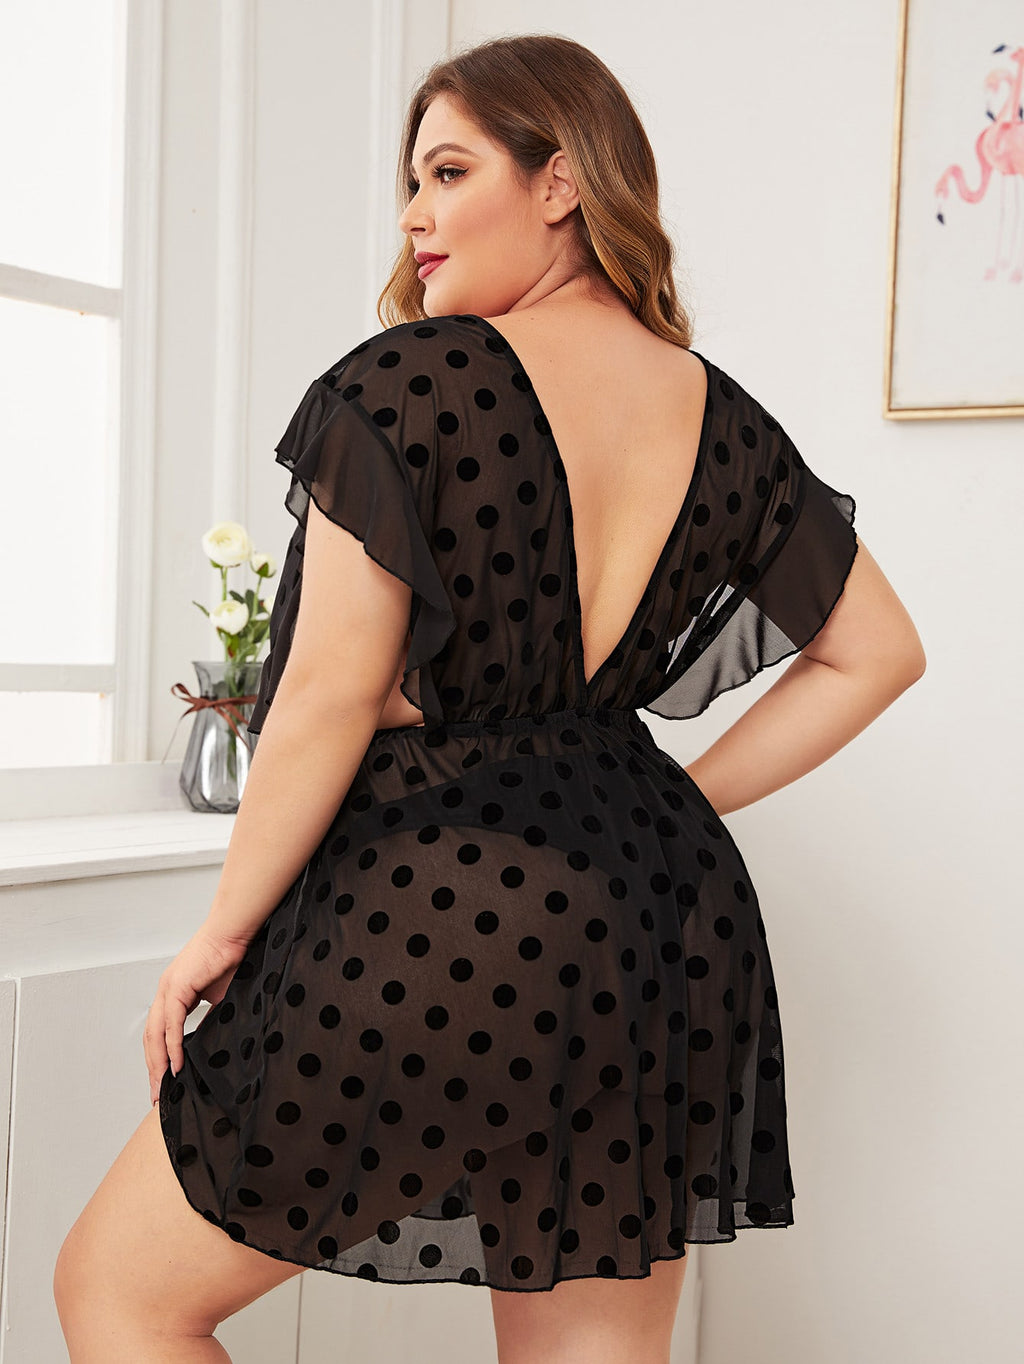 Plus Size Elegant Polka Dot Ruffle Night Dress